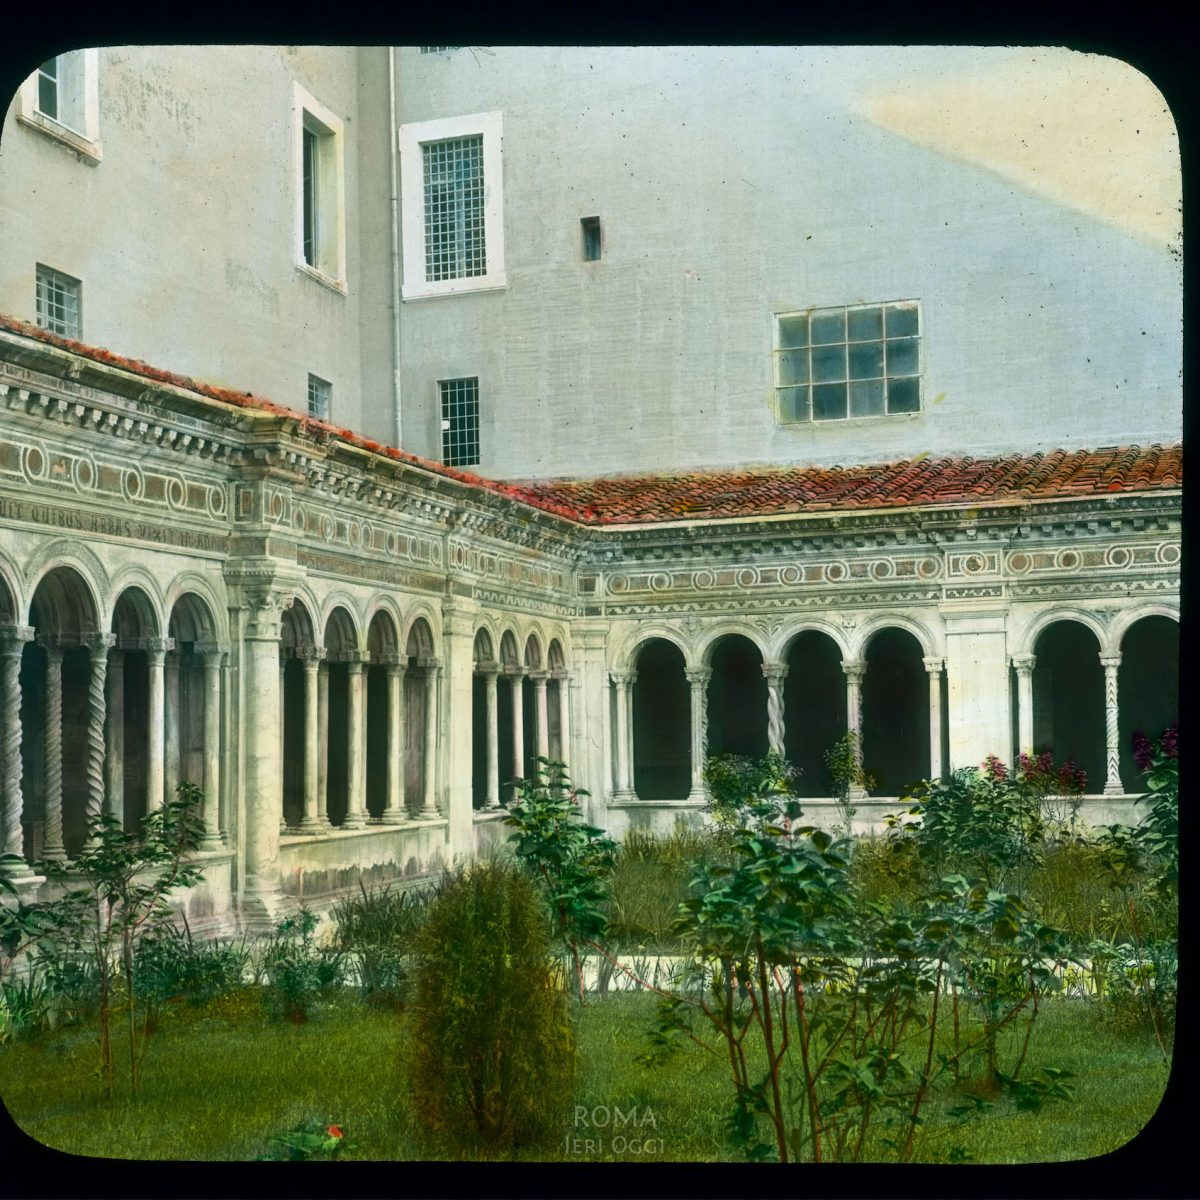 Rome. St. Paul's-Outside-the-Walls (Basilica di San Paolo fuori le Mura): detail of cloister View in tinted lantern slide, ca. 1919-1938. The church dates from ca. 380, the cloister from the 13th century.